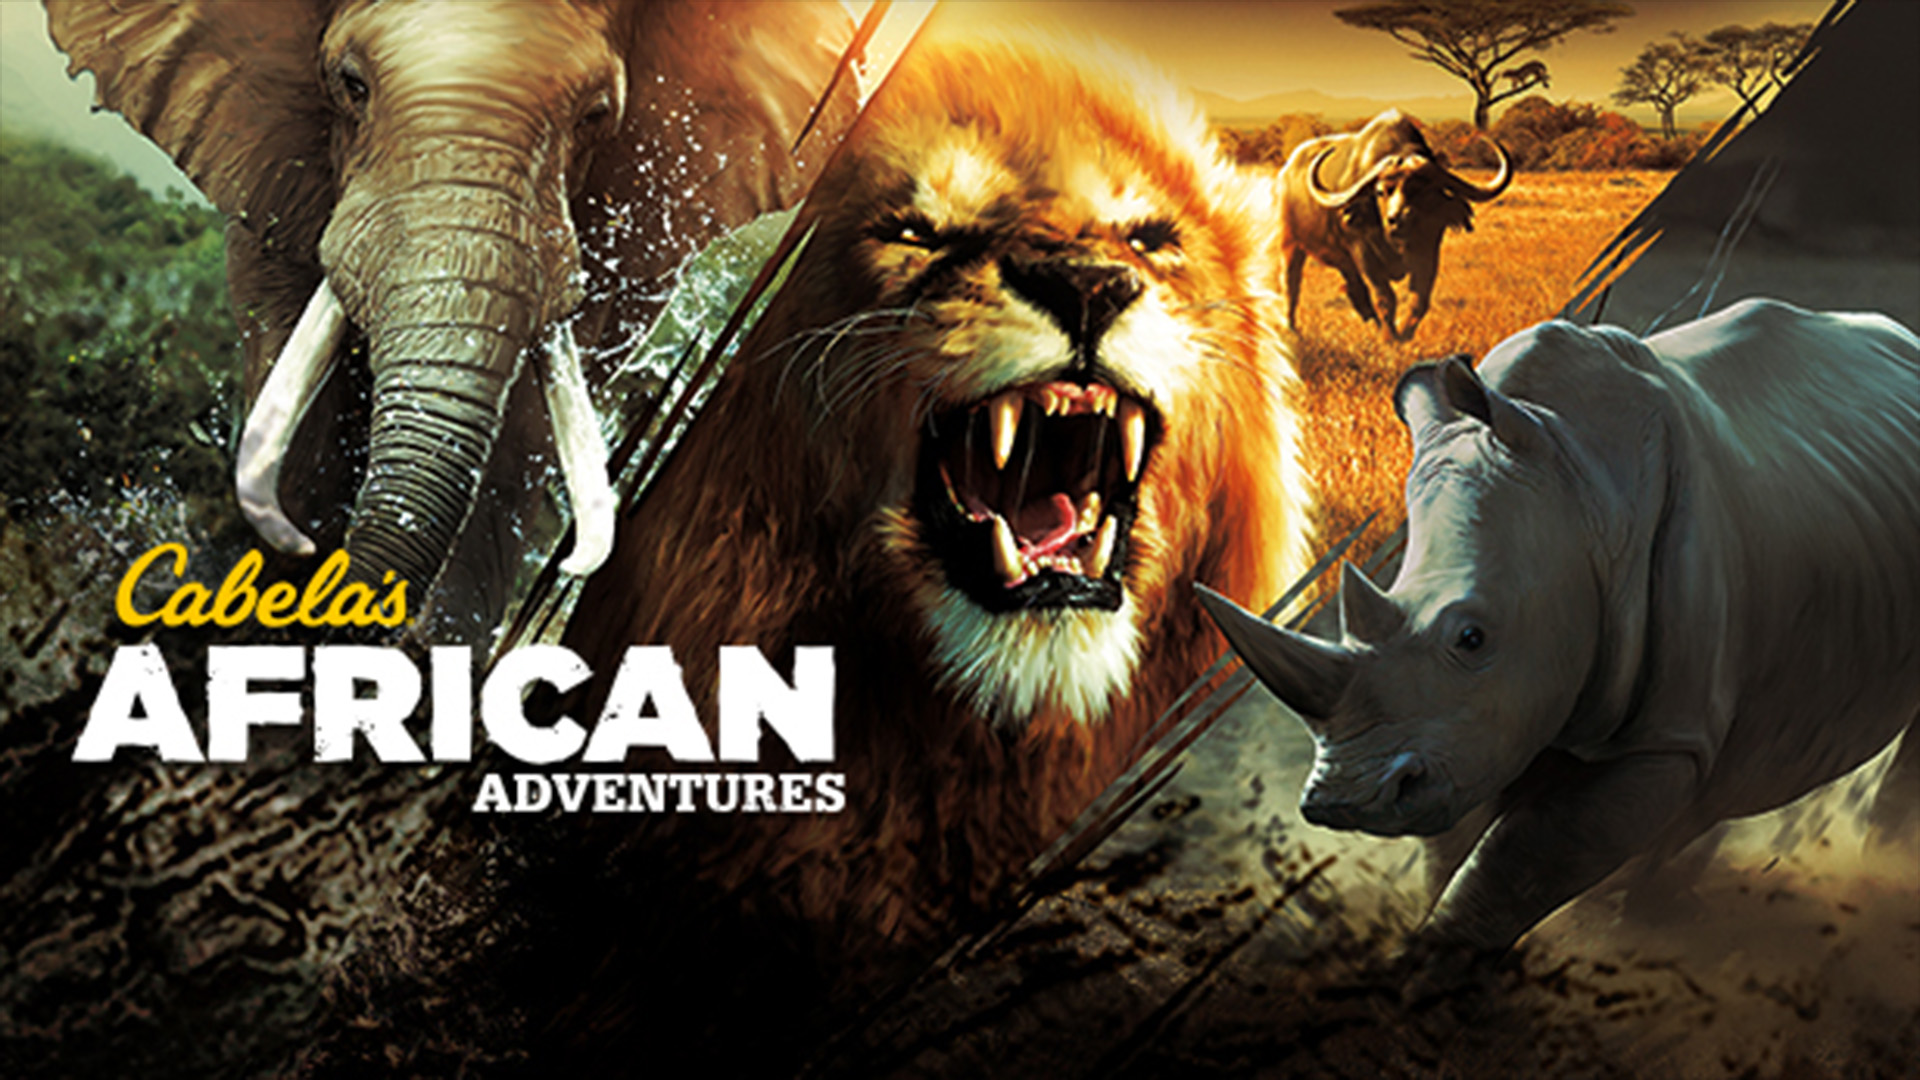 cabela's african adventures hd wallpaper | background image